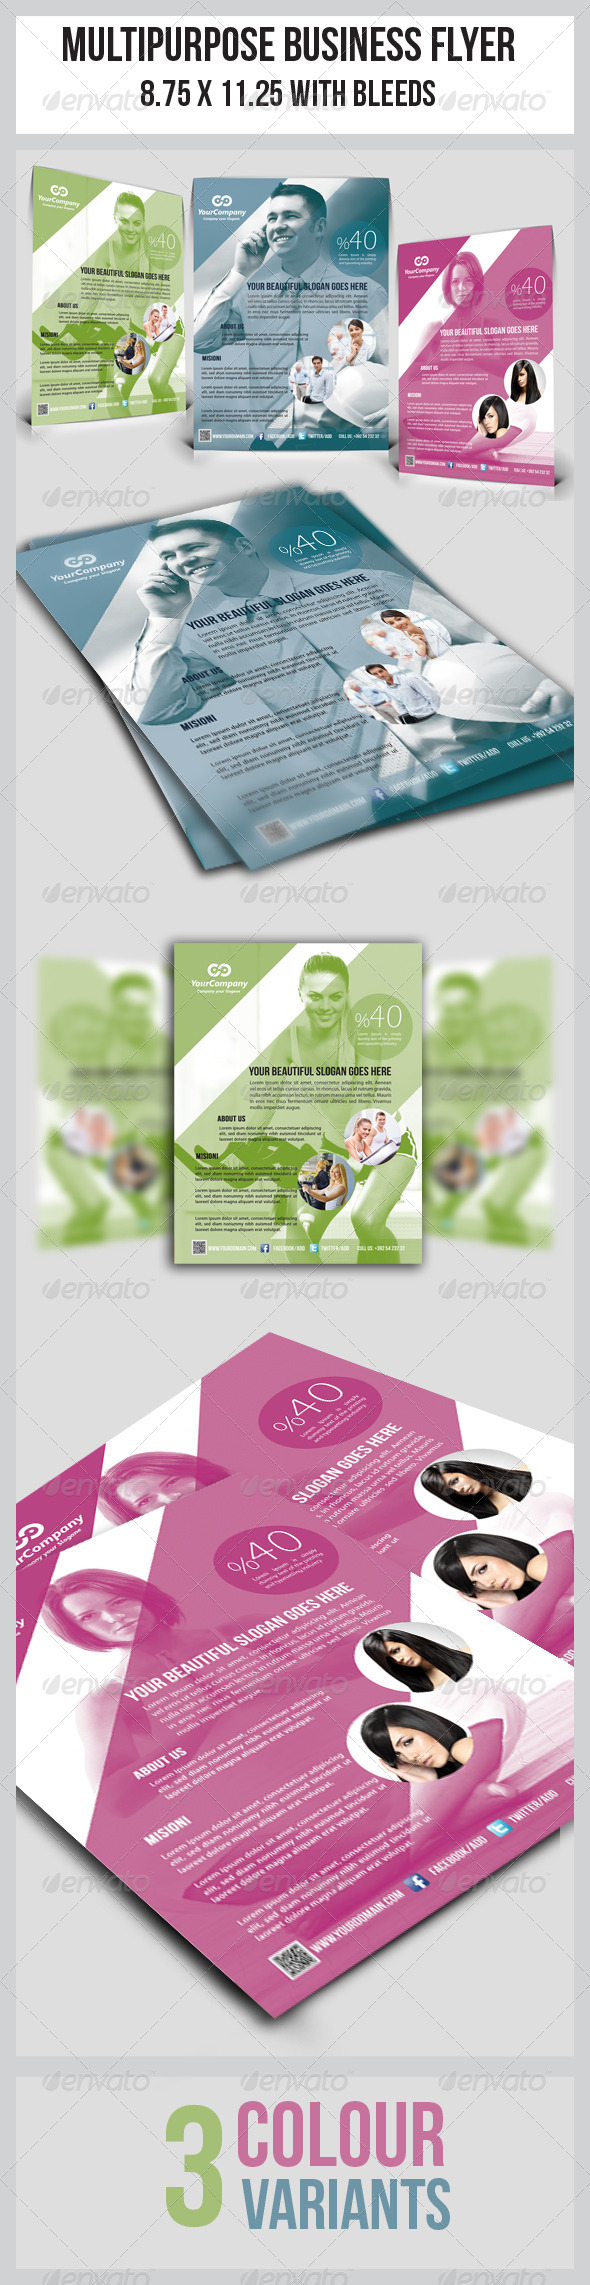 GraphicRiver Multipurpose Business Flyer 4903429